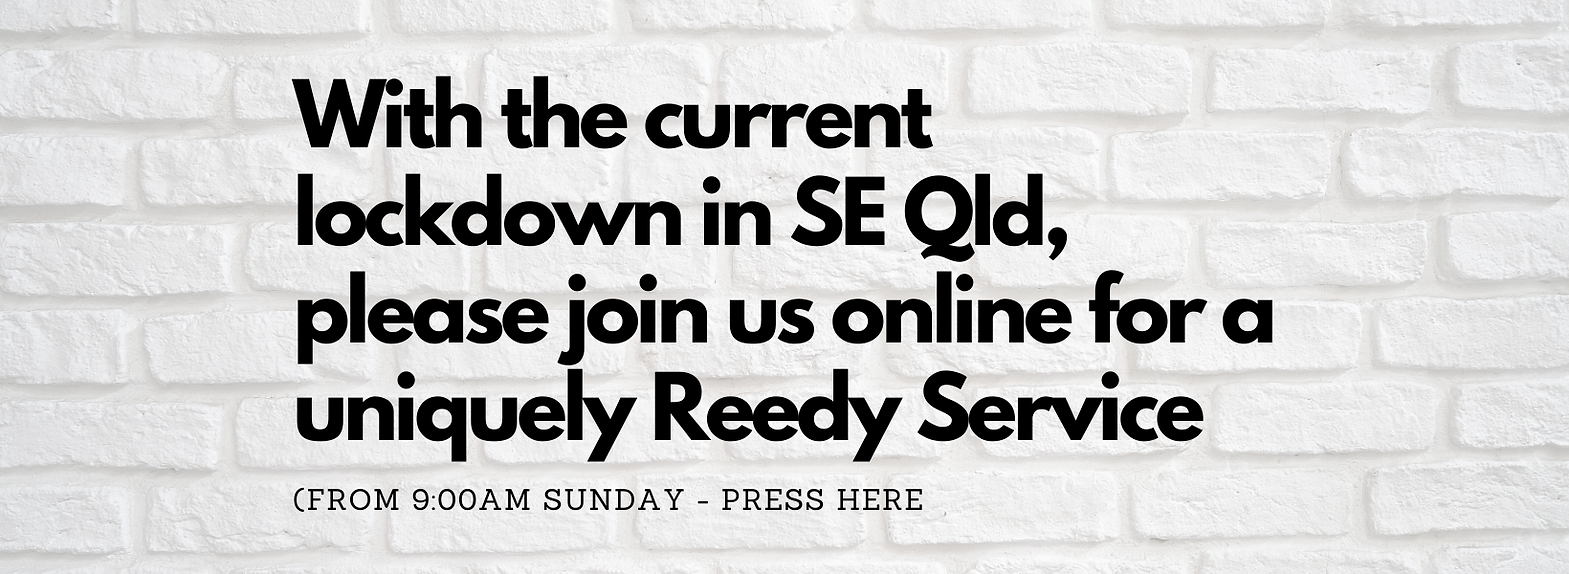 With the current lockdown in SE Qld, please join us online for a uniquely Reedy Service.pn